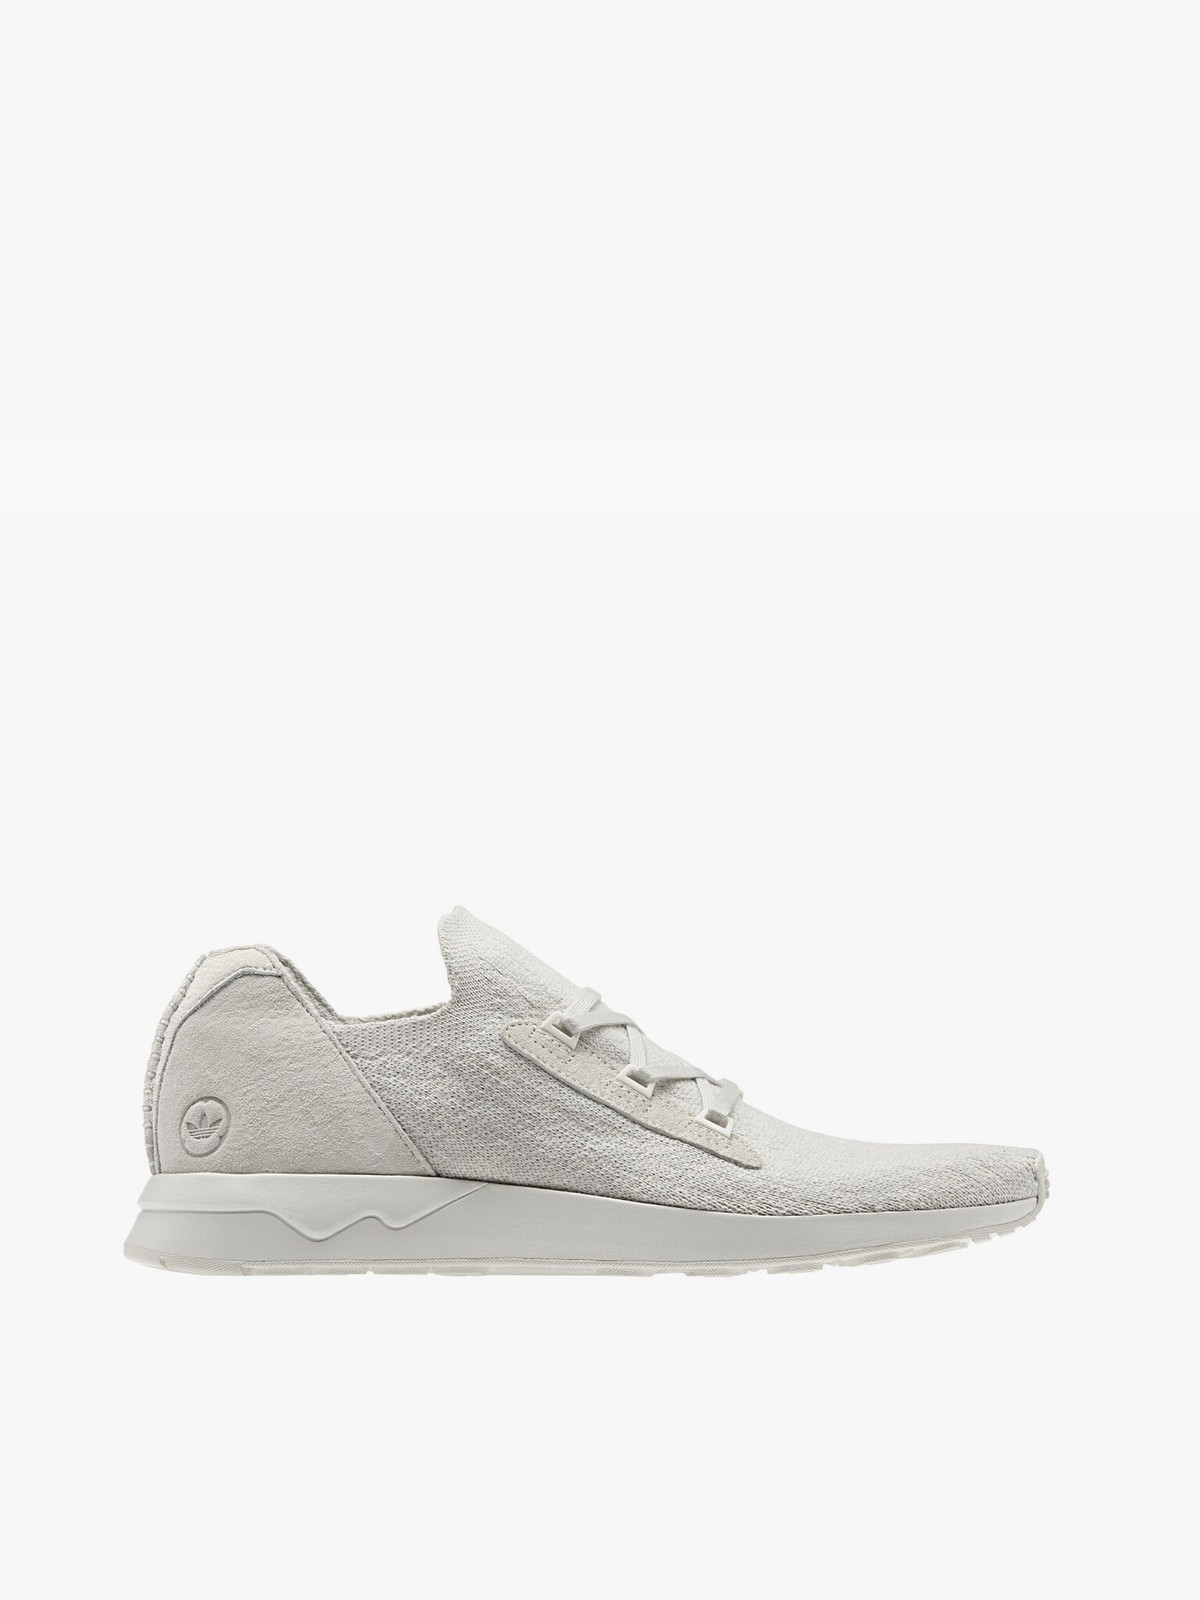 check out 116af 39a4f Men s Adidas Originals Adidas X Wings + Horns ZX Flux X Primeknit ...